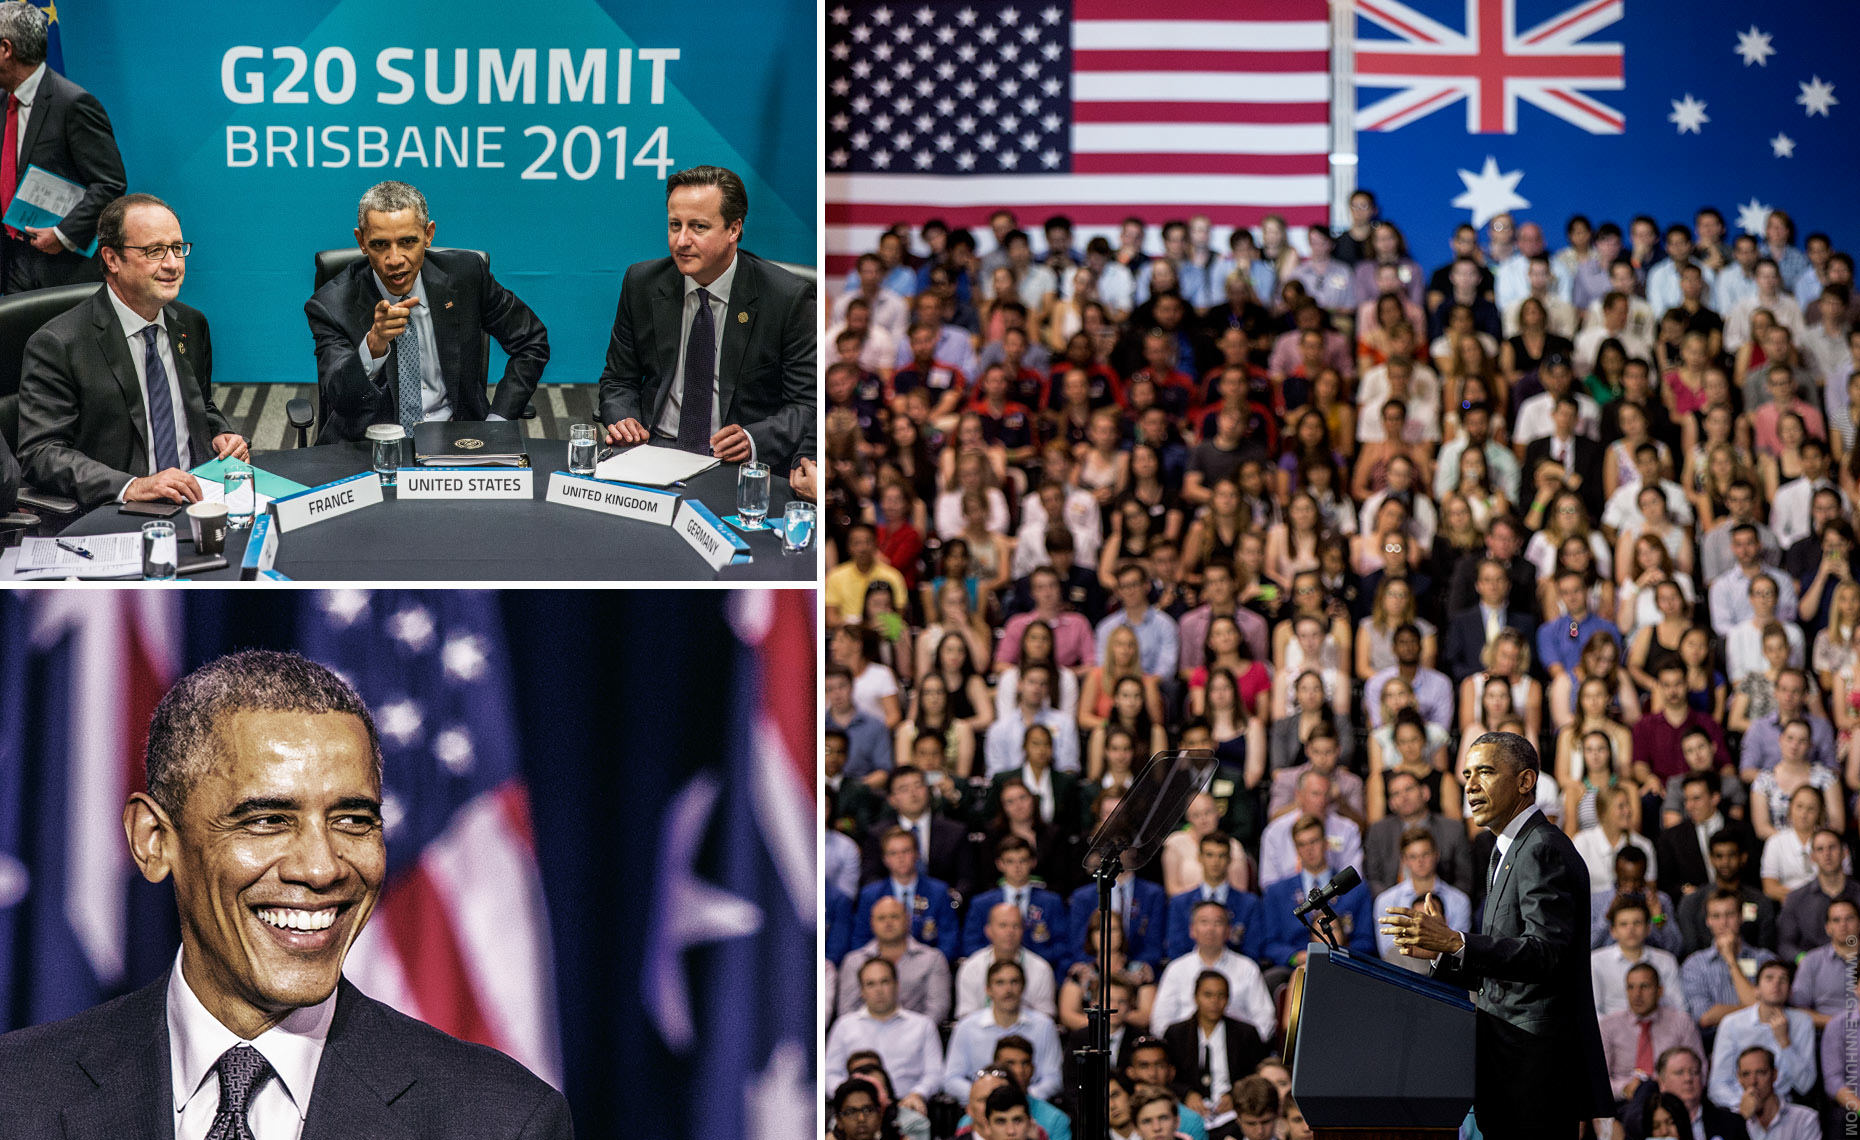 Barack Obama at the Brisbane G20 Summit